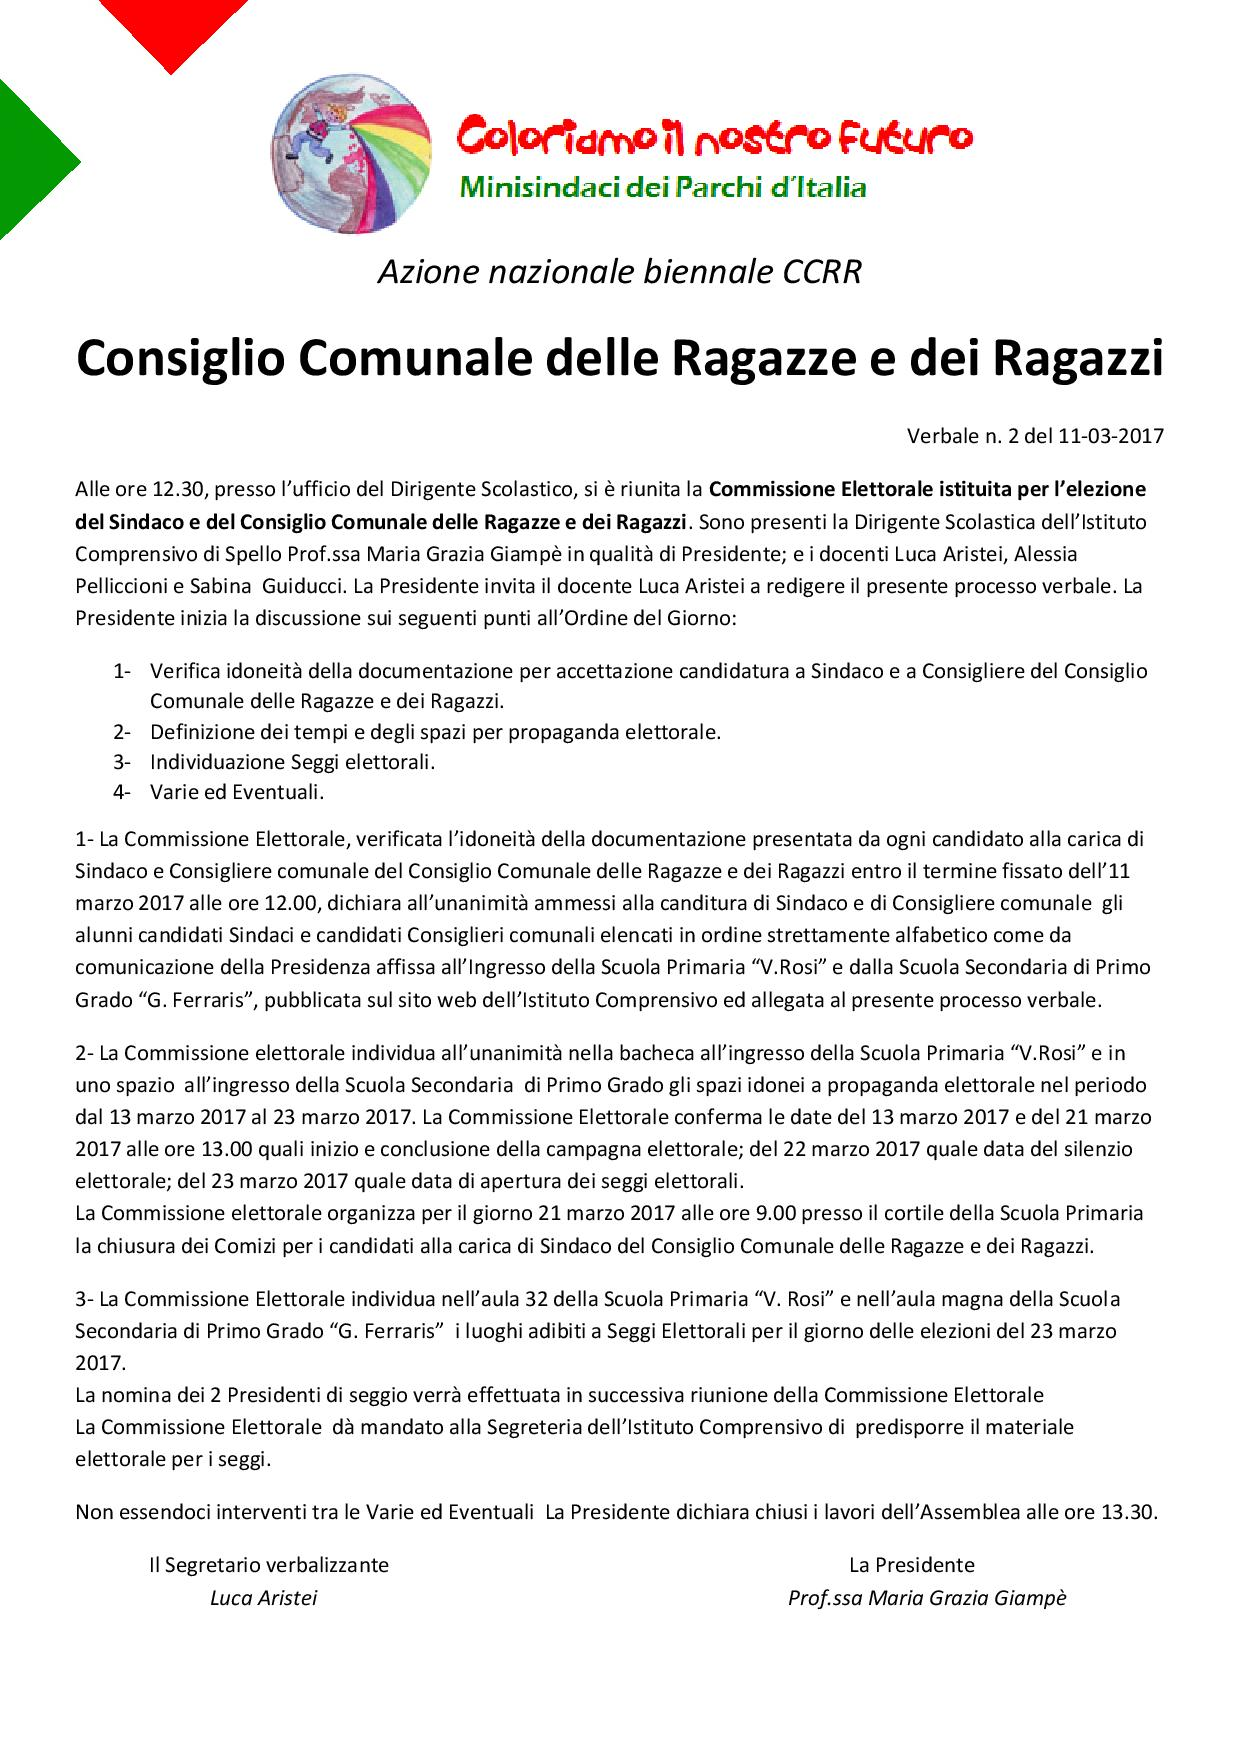 Verbale Commissione CCRR